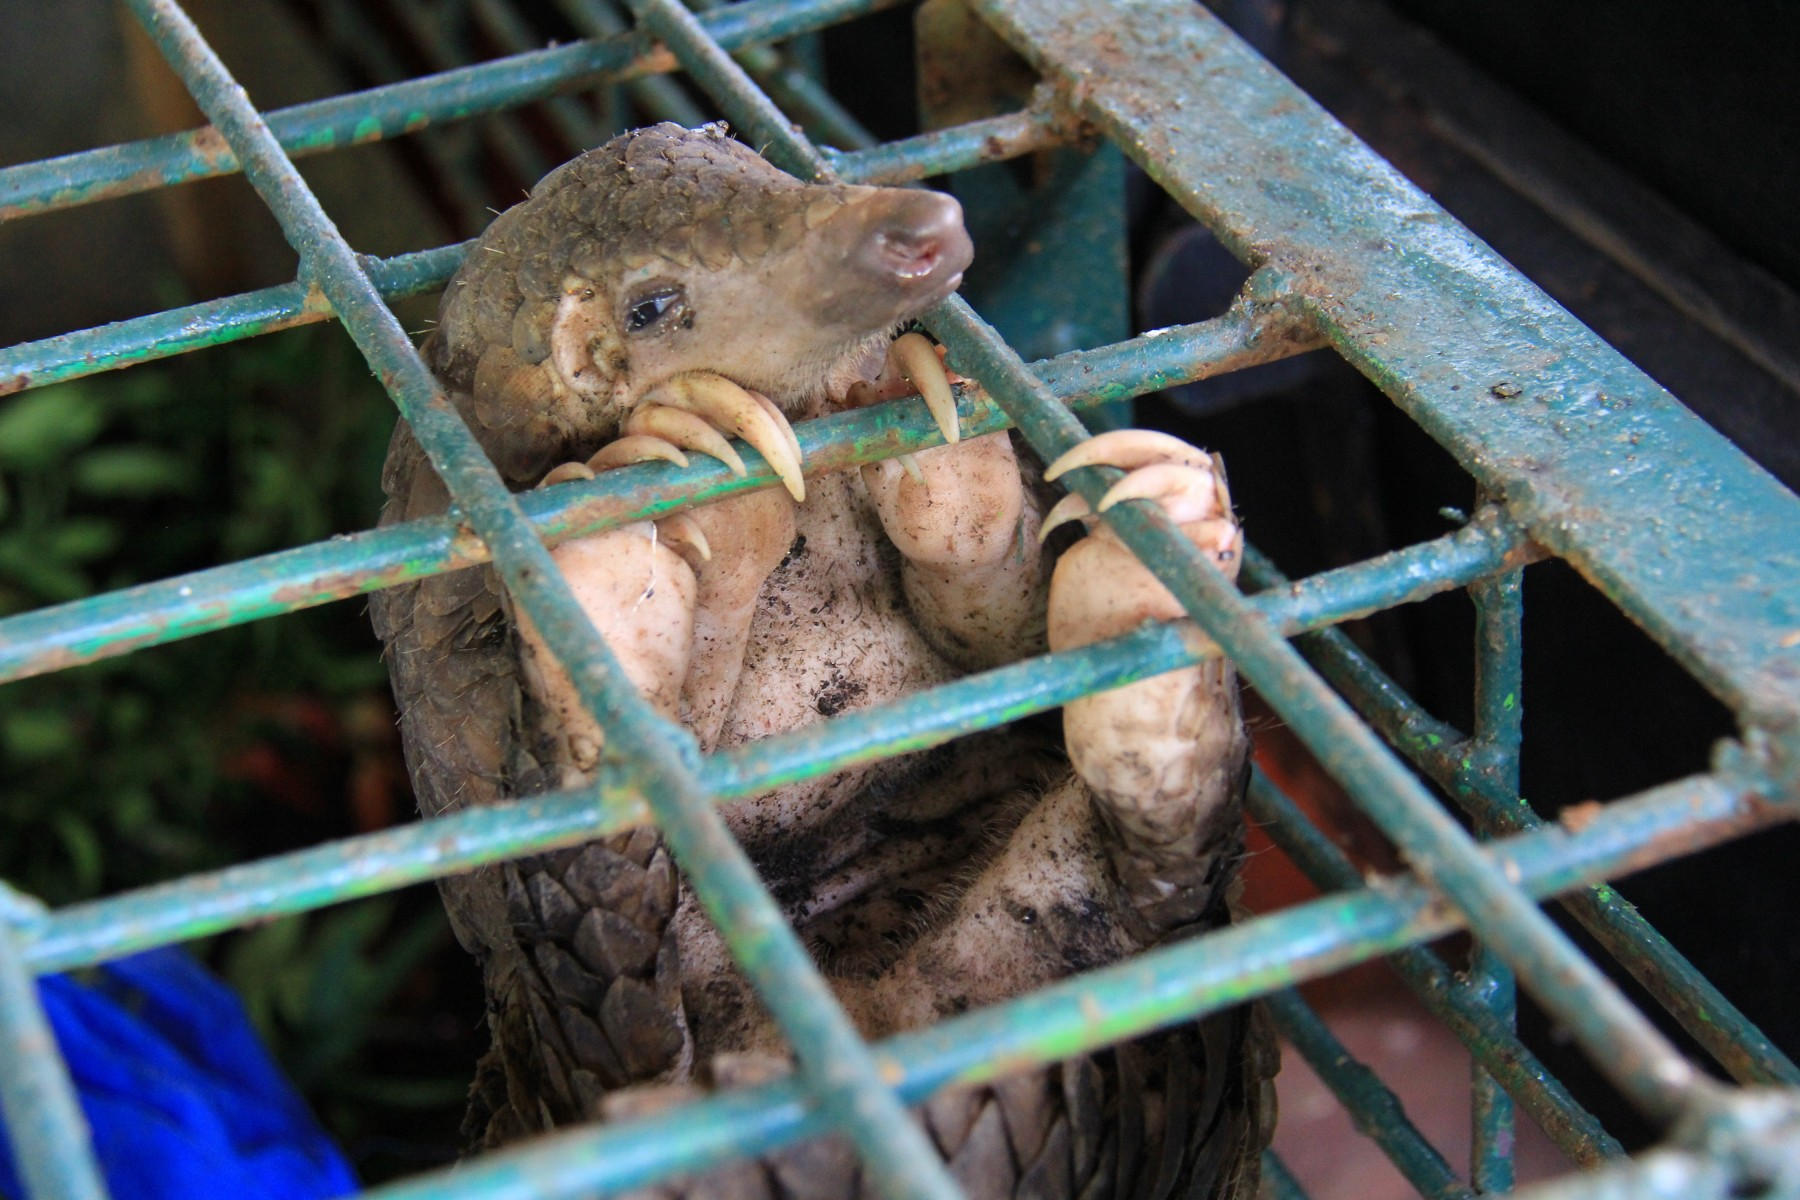 Caged pangolin in a market